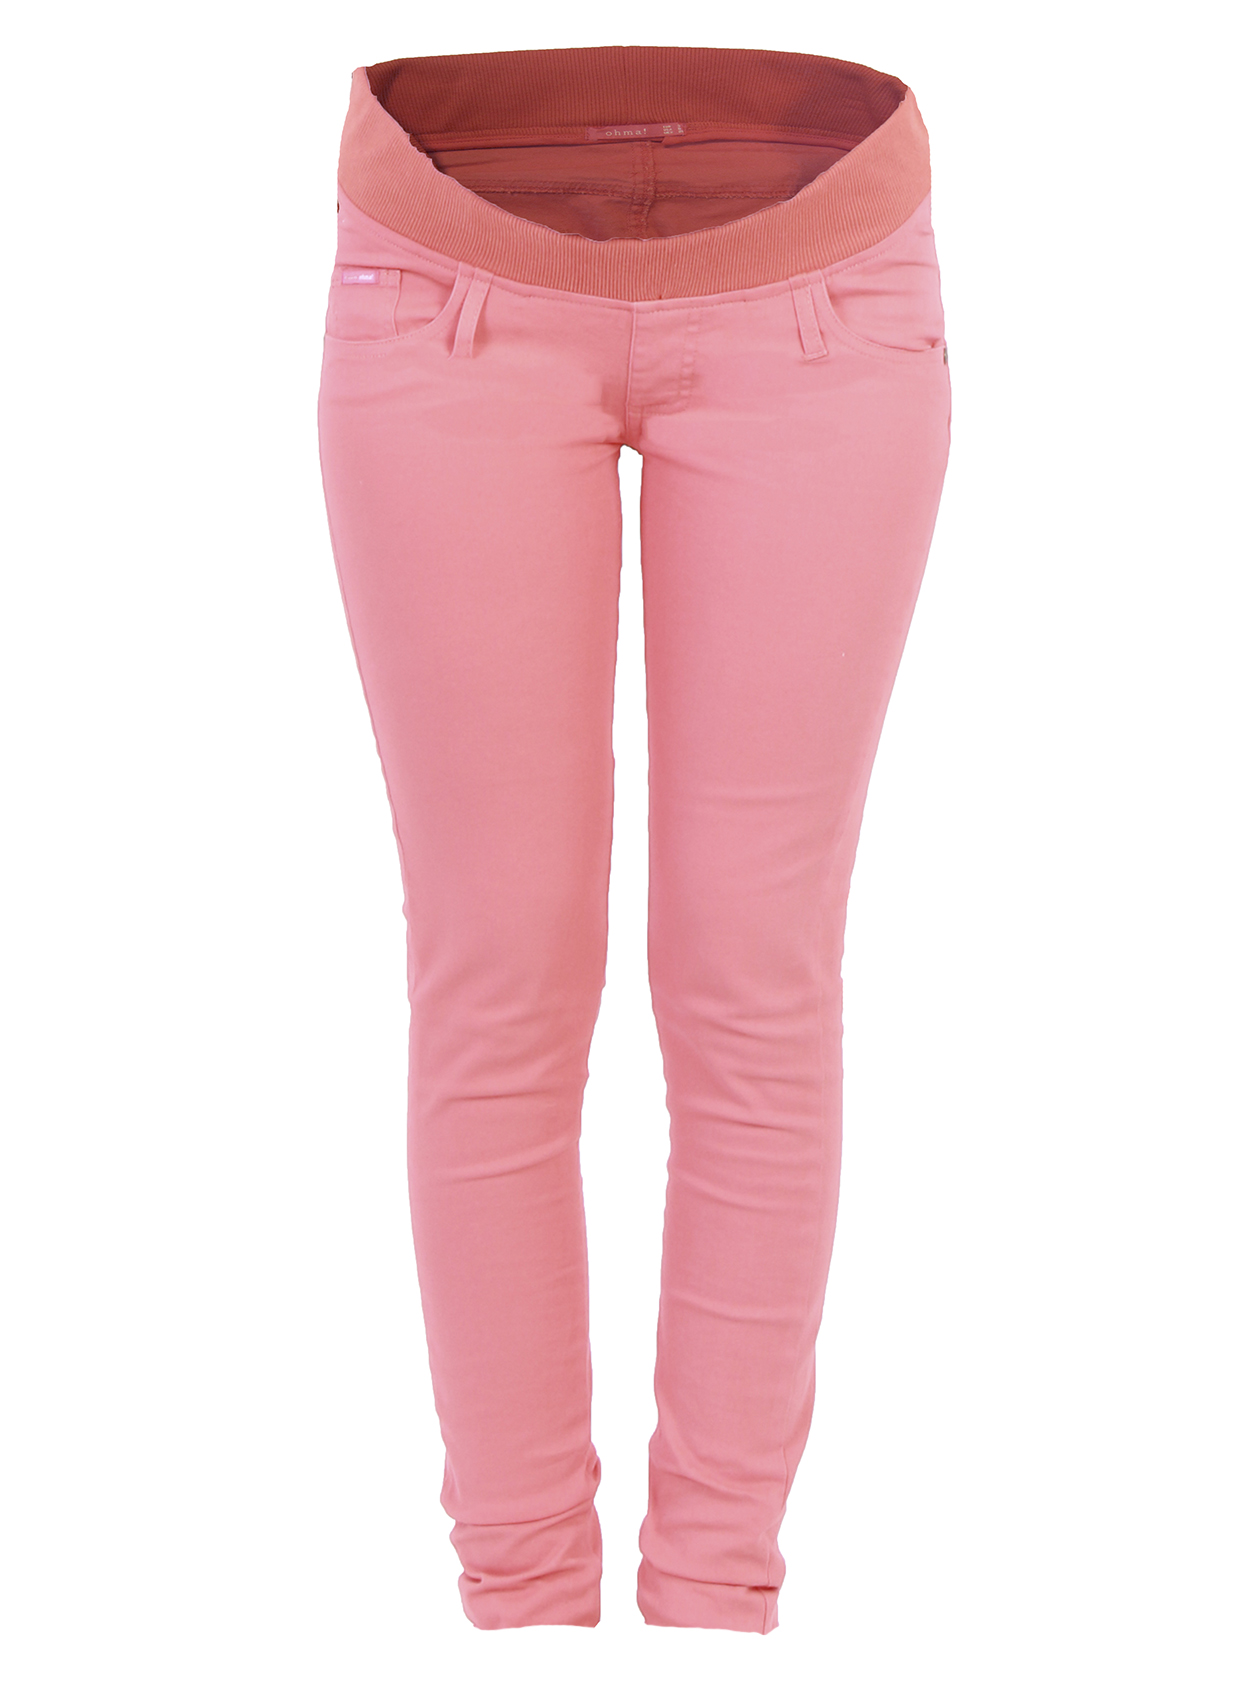 0469c958662a7 Coral Skinny Fit Maternity Jeggings With Free UK Shipping & Returns